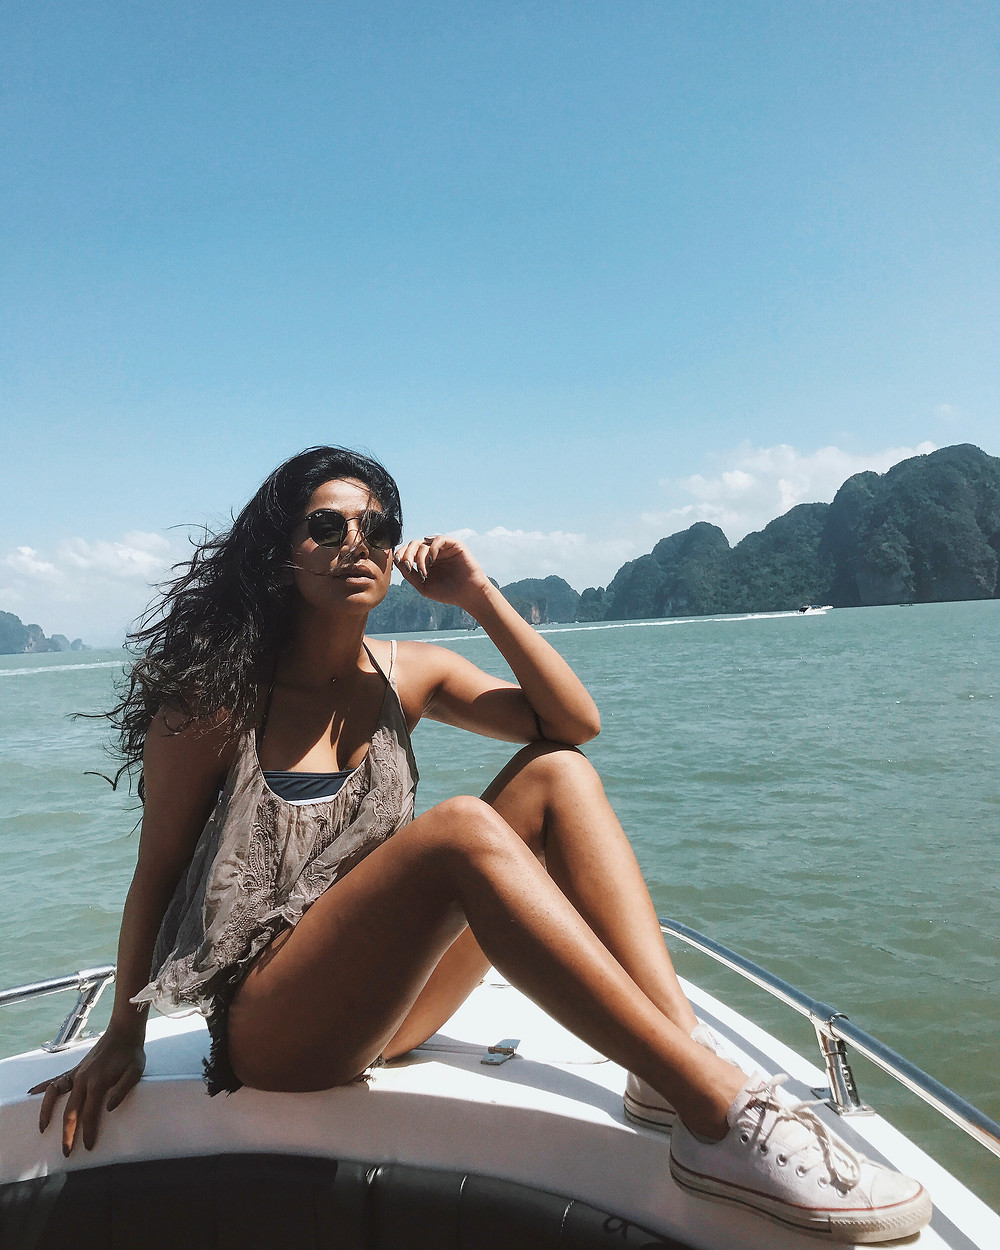 Enjoying the boat ride during the James Bond Island tour